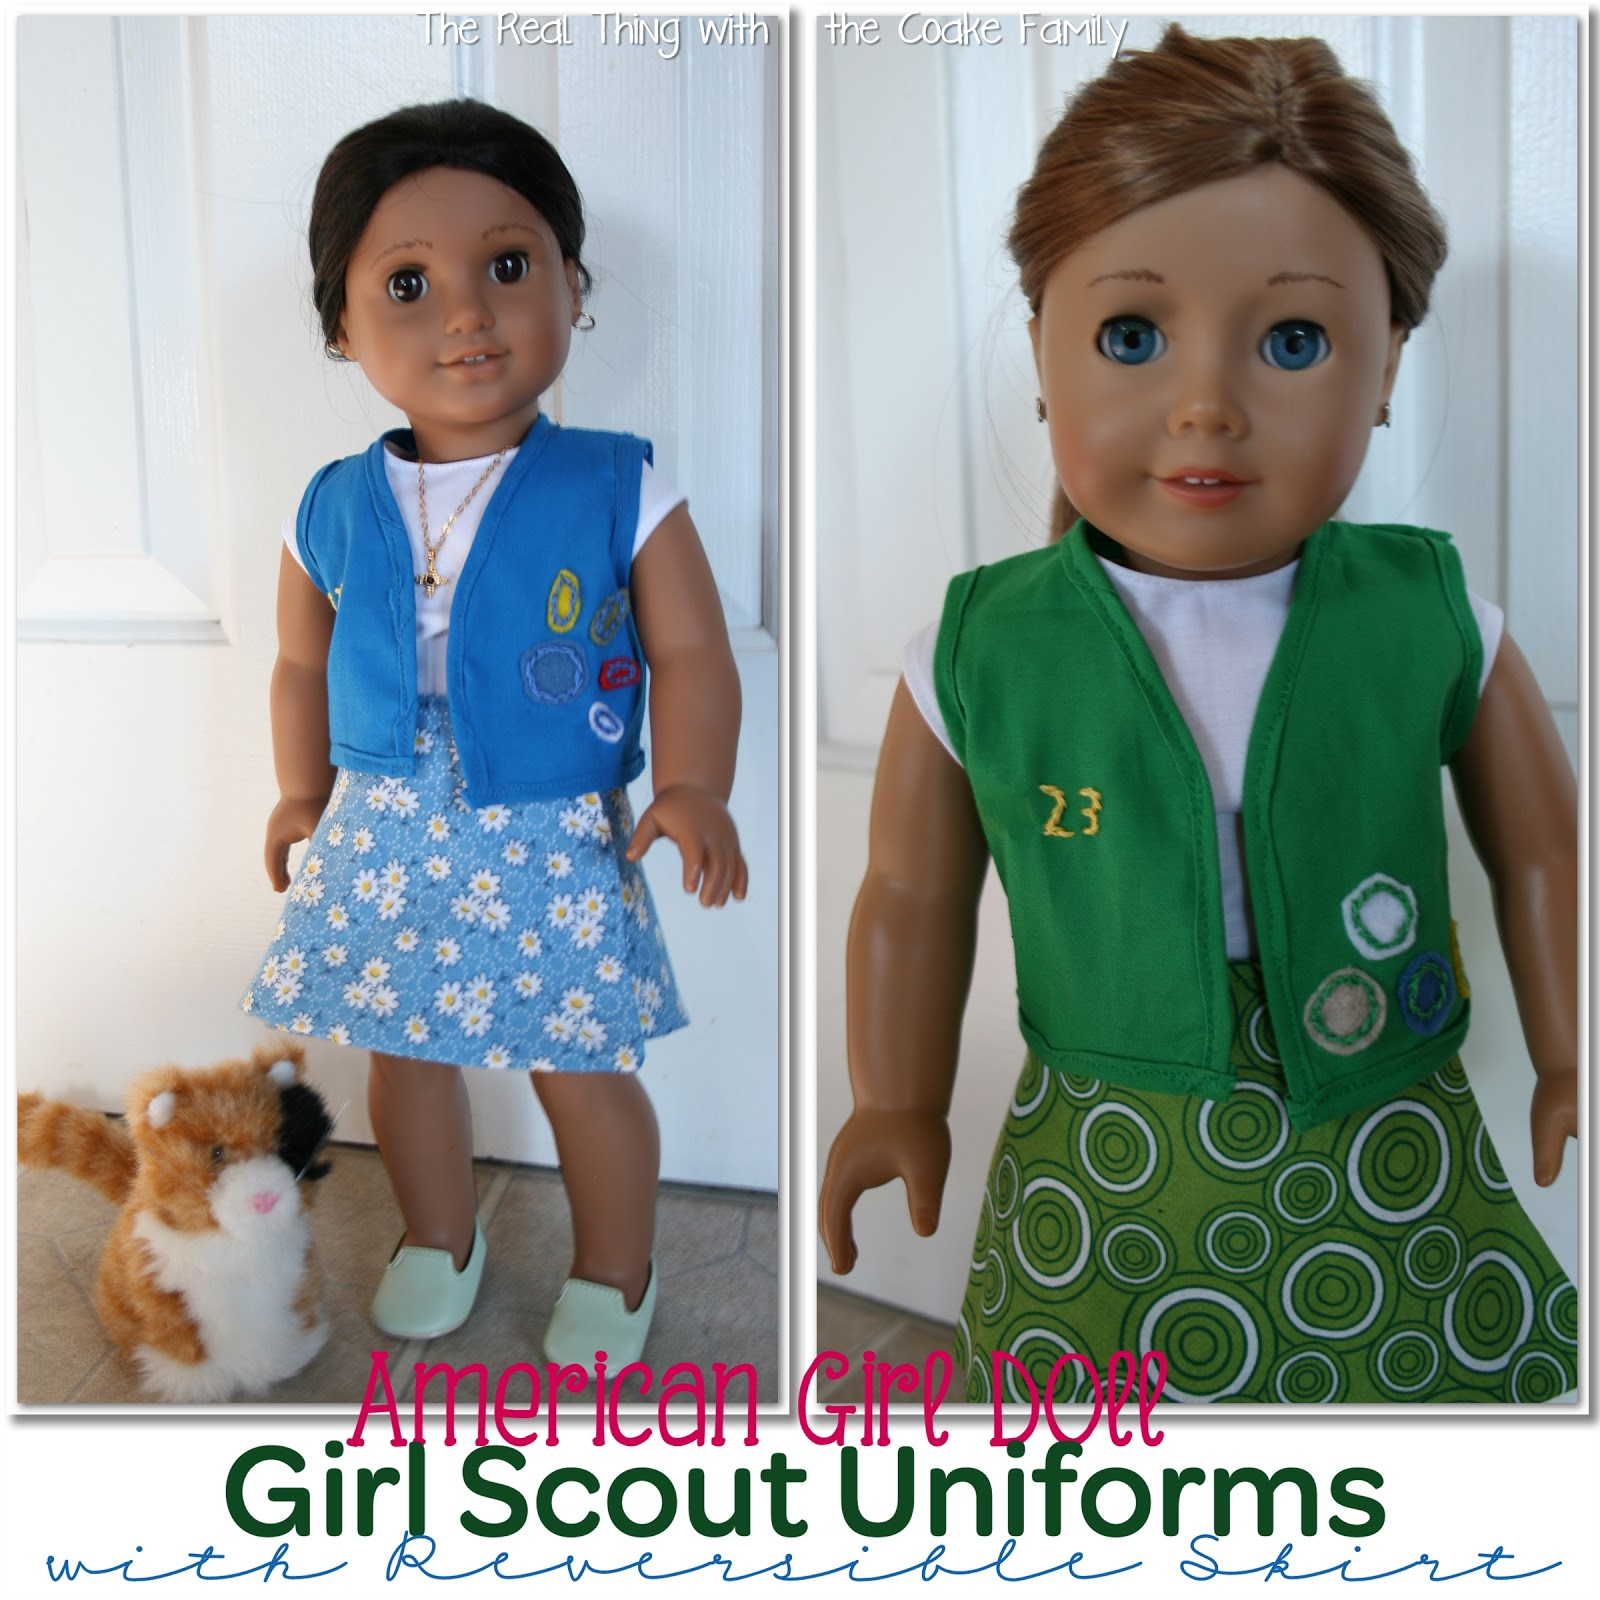 Free American Girl Doll Patterns: Girl Scout Uniform - American Girl Doll Clothes Patterns Free Printable